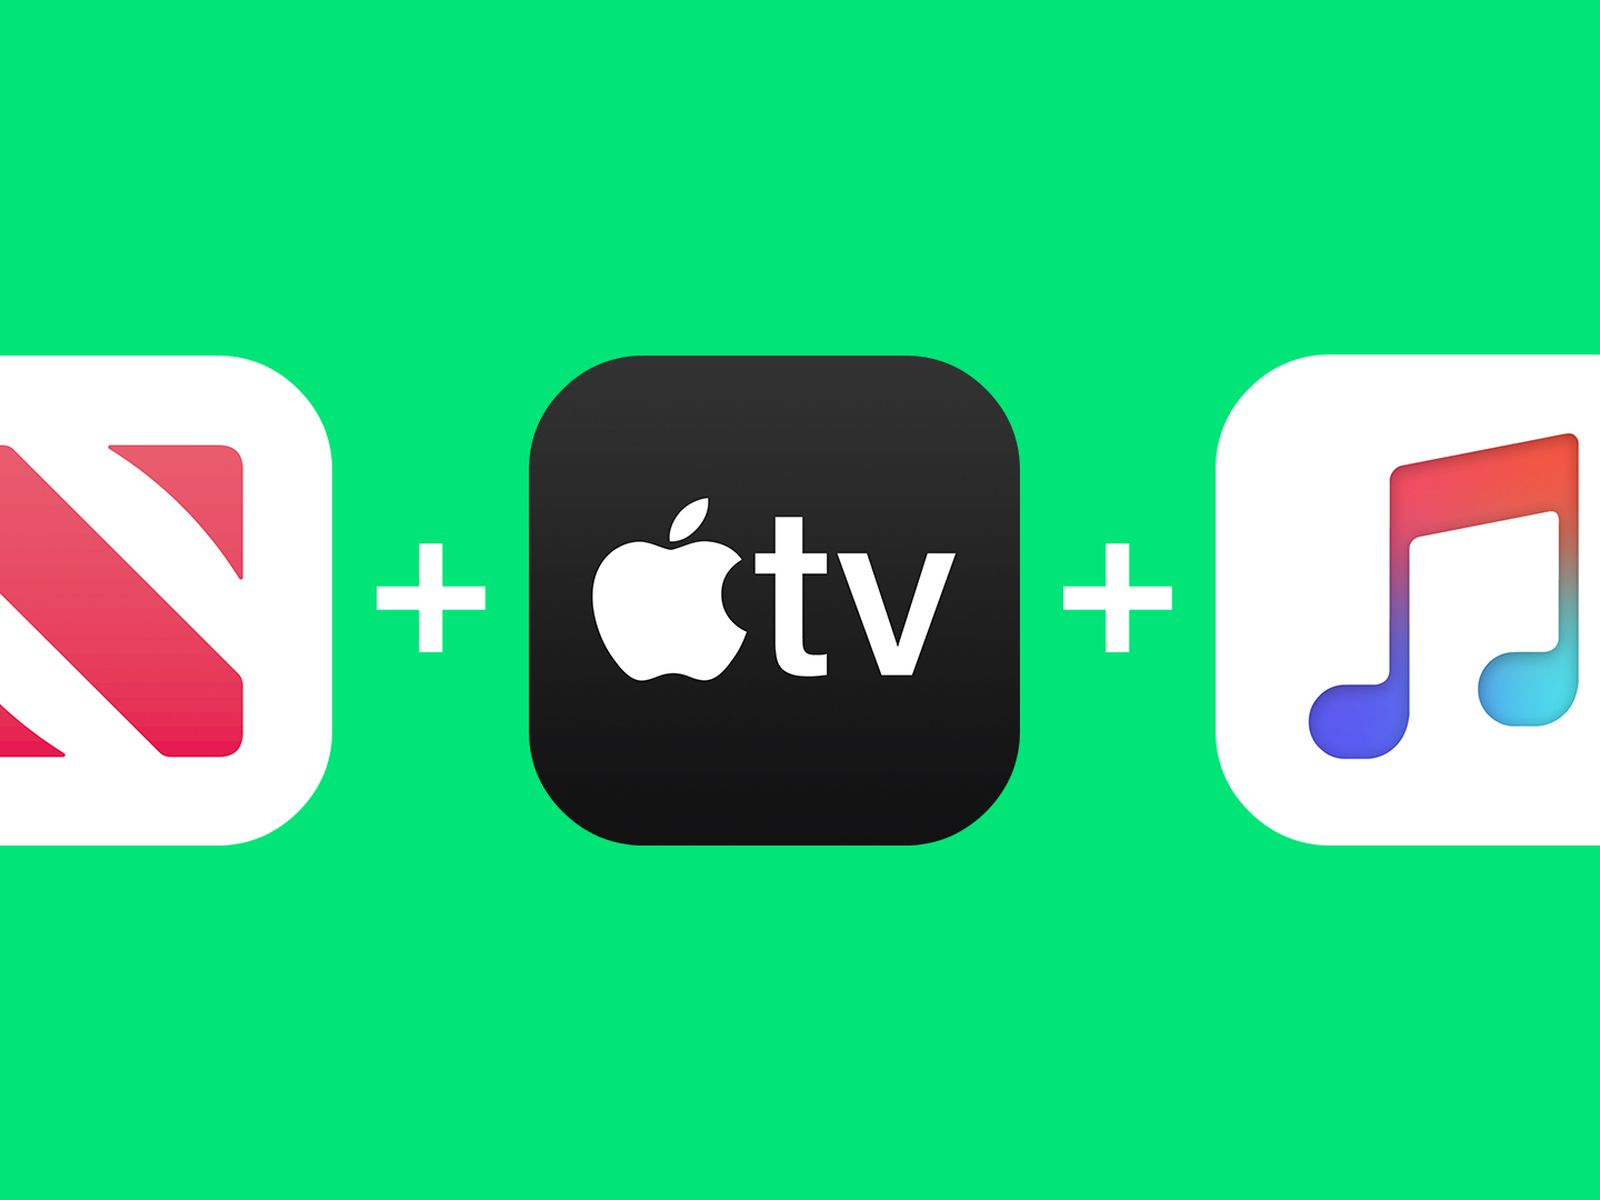 Apple to Launch Bundled Subscription Services Called 'Apple One' - MacRumors